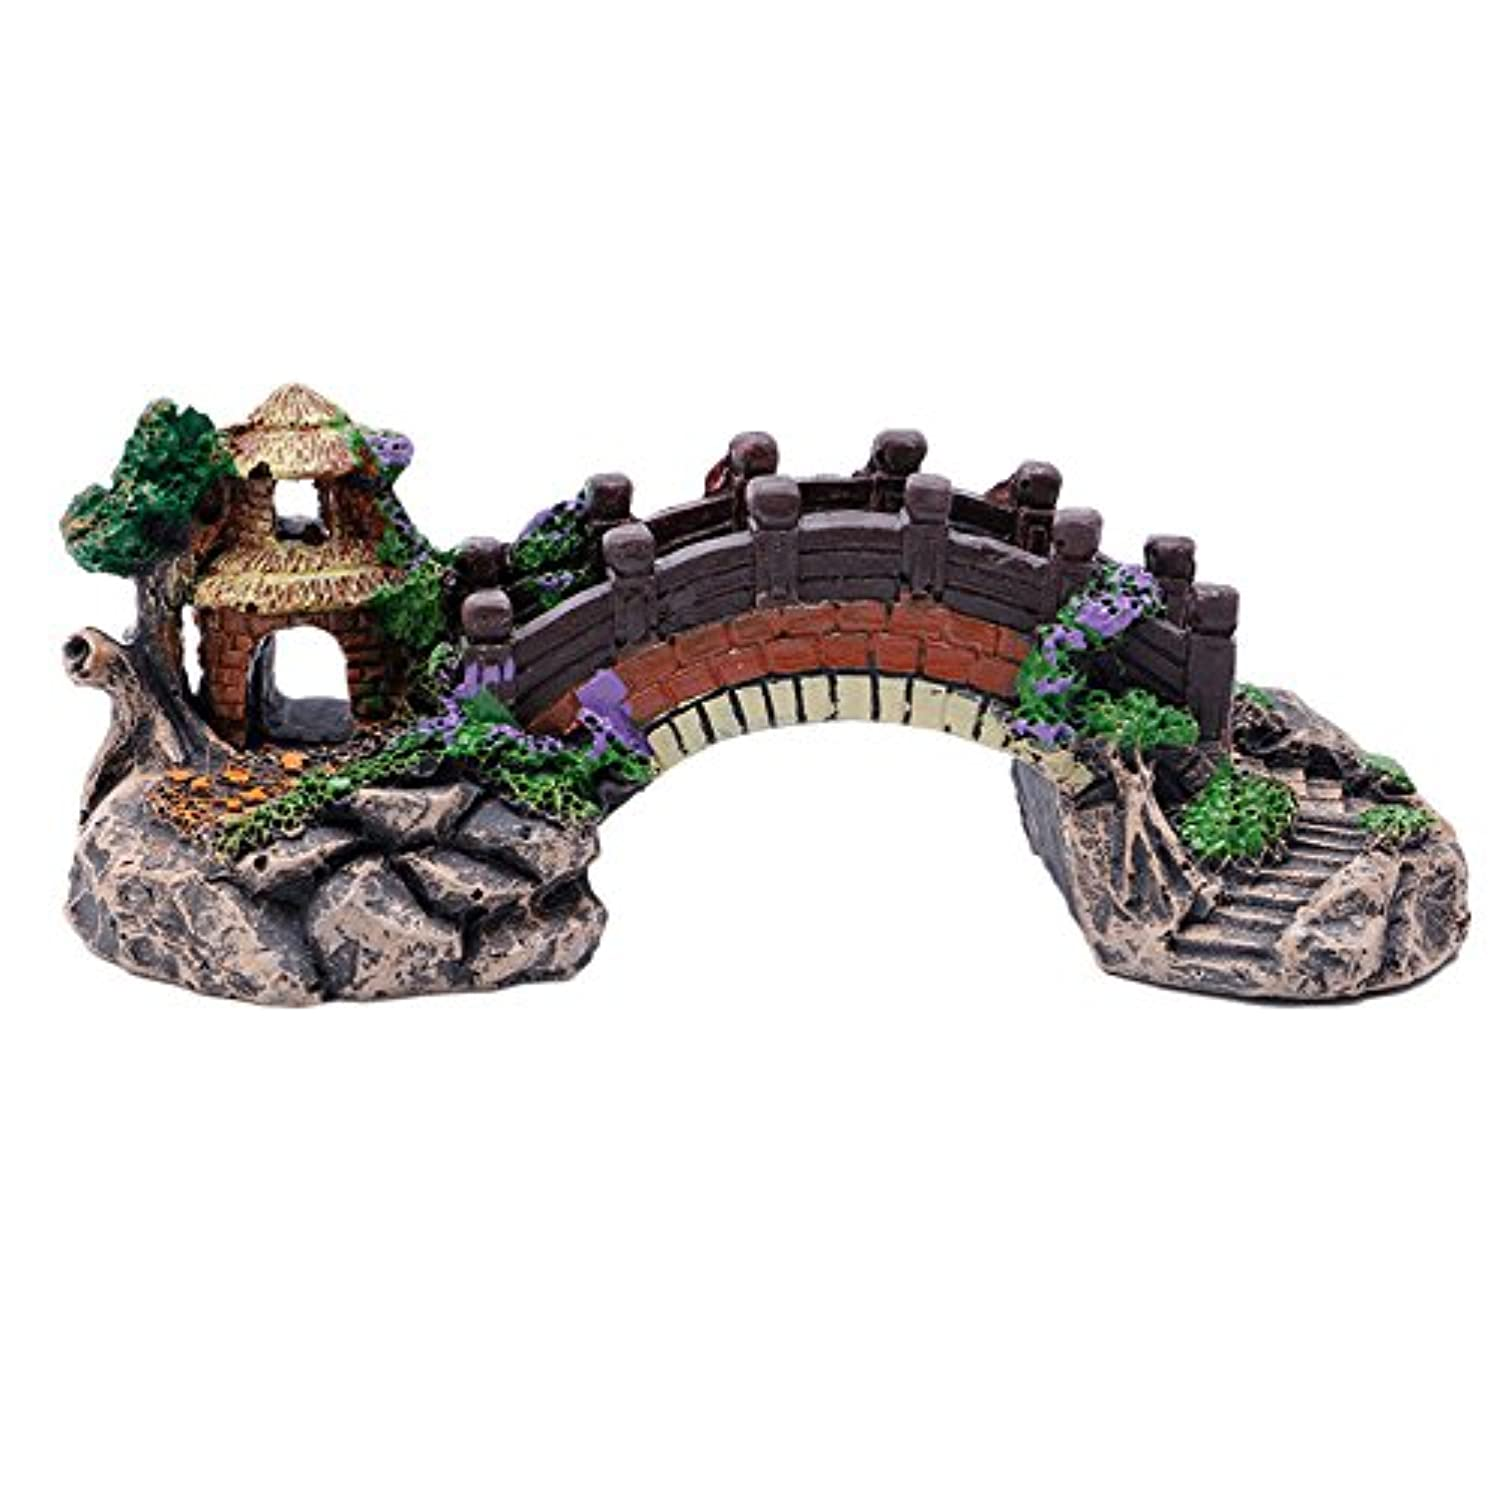 Zadaro aquarium resin bridge landscape tank ornaments fish for Aquarium bridge decoration